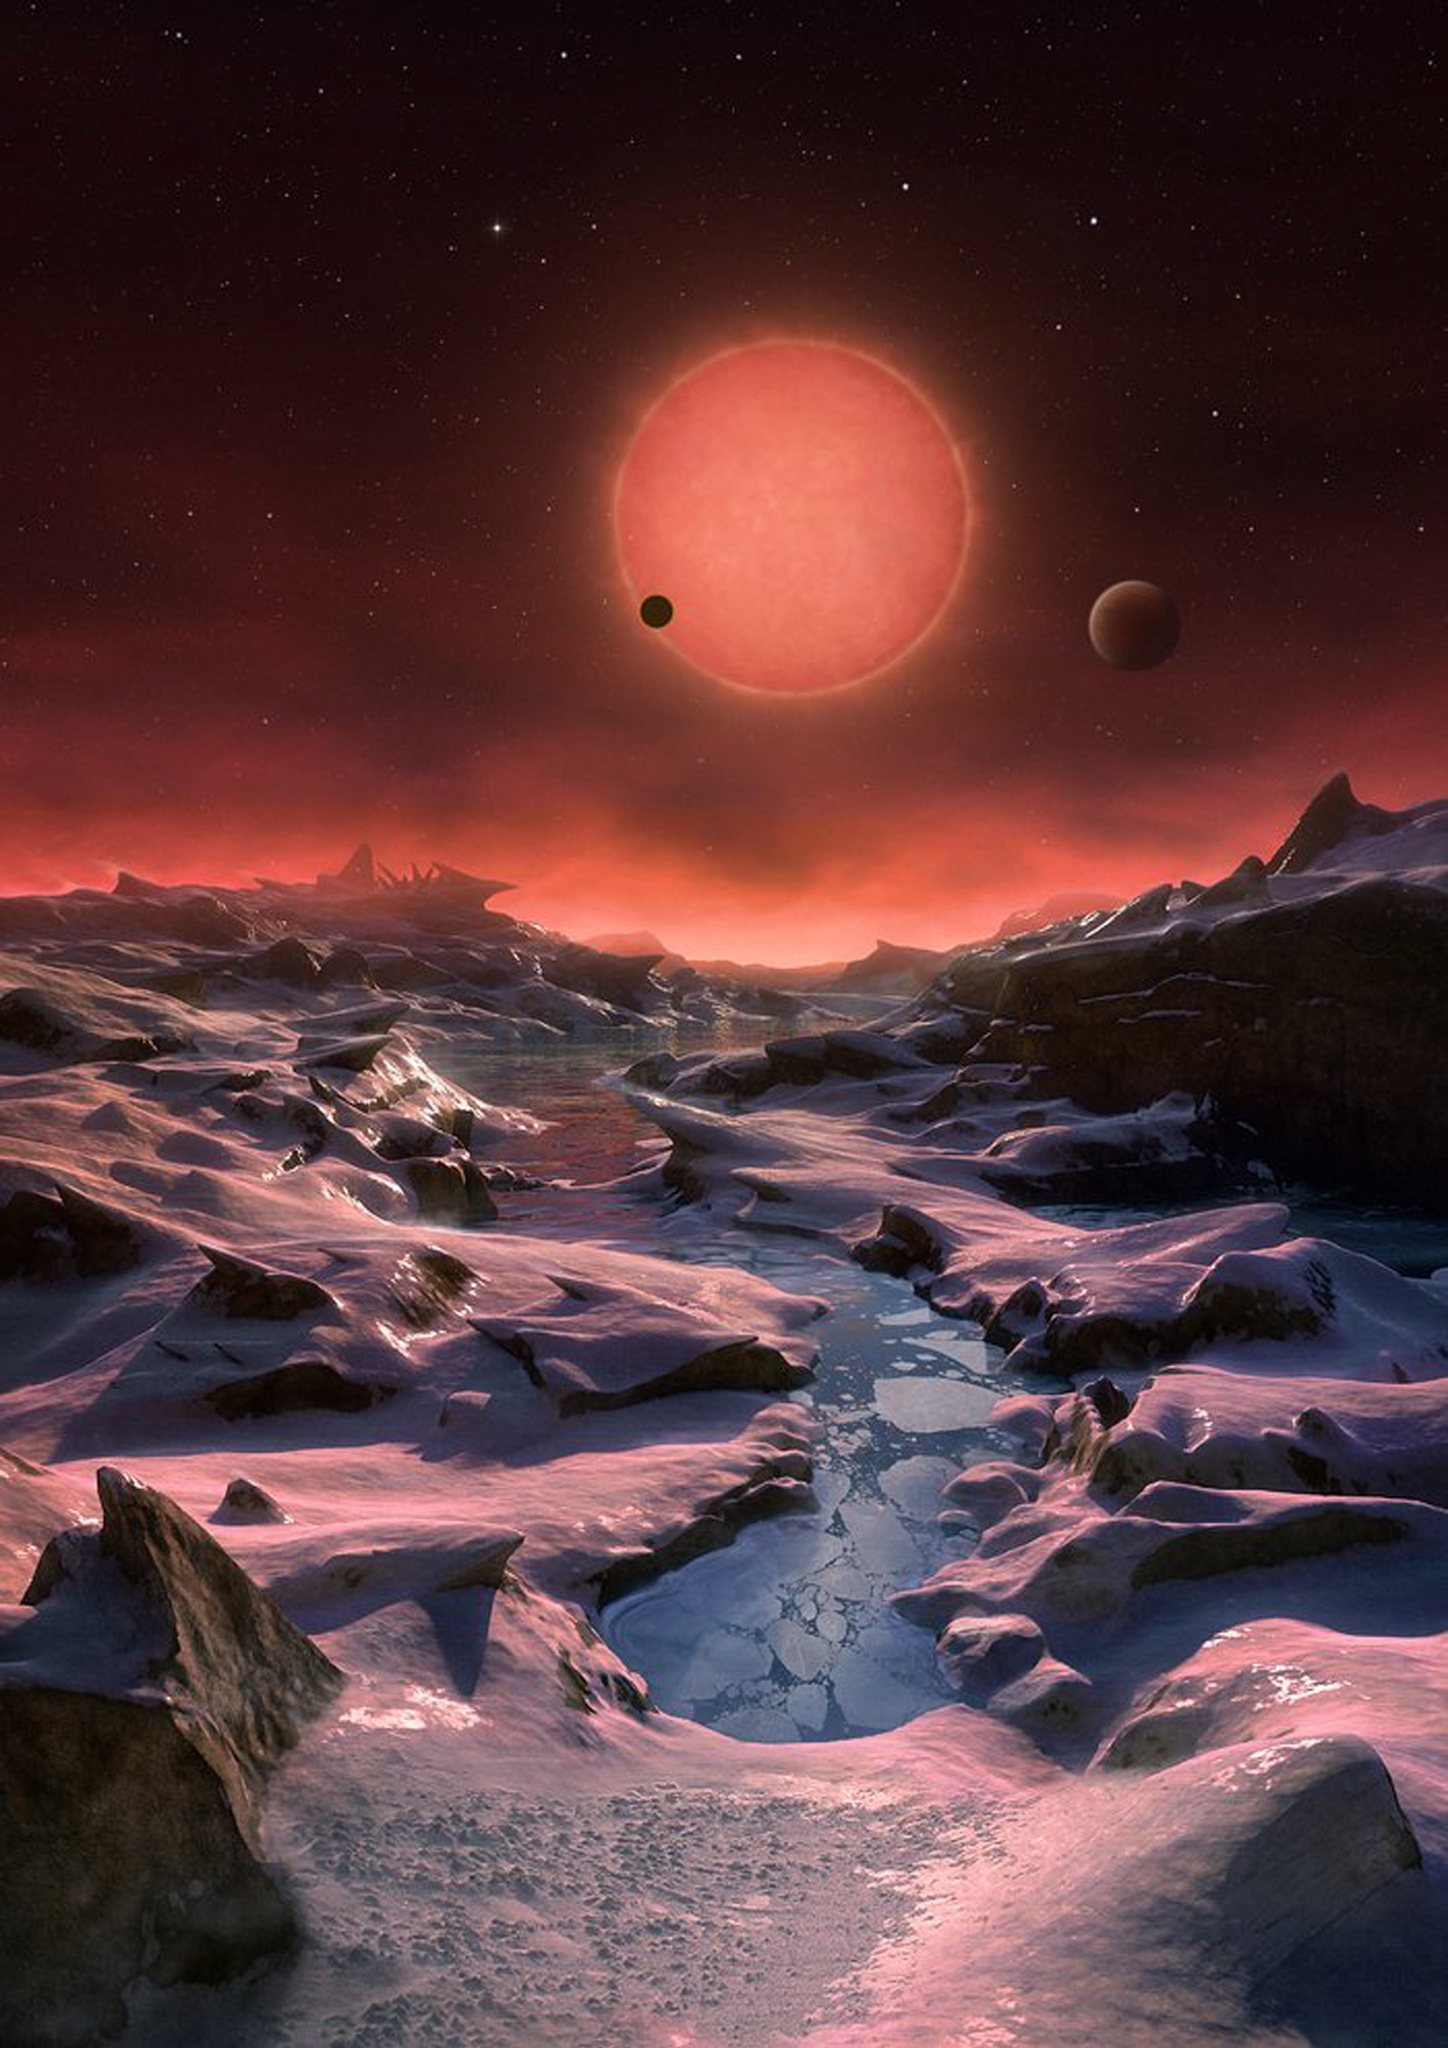 3 planets orbiting dwarf star prime spots to search for life